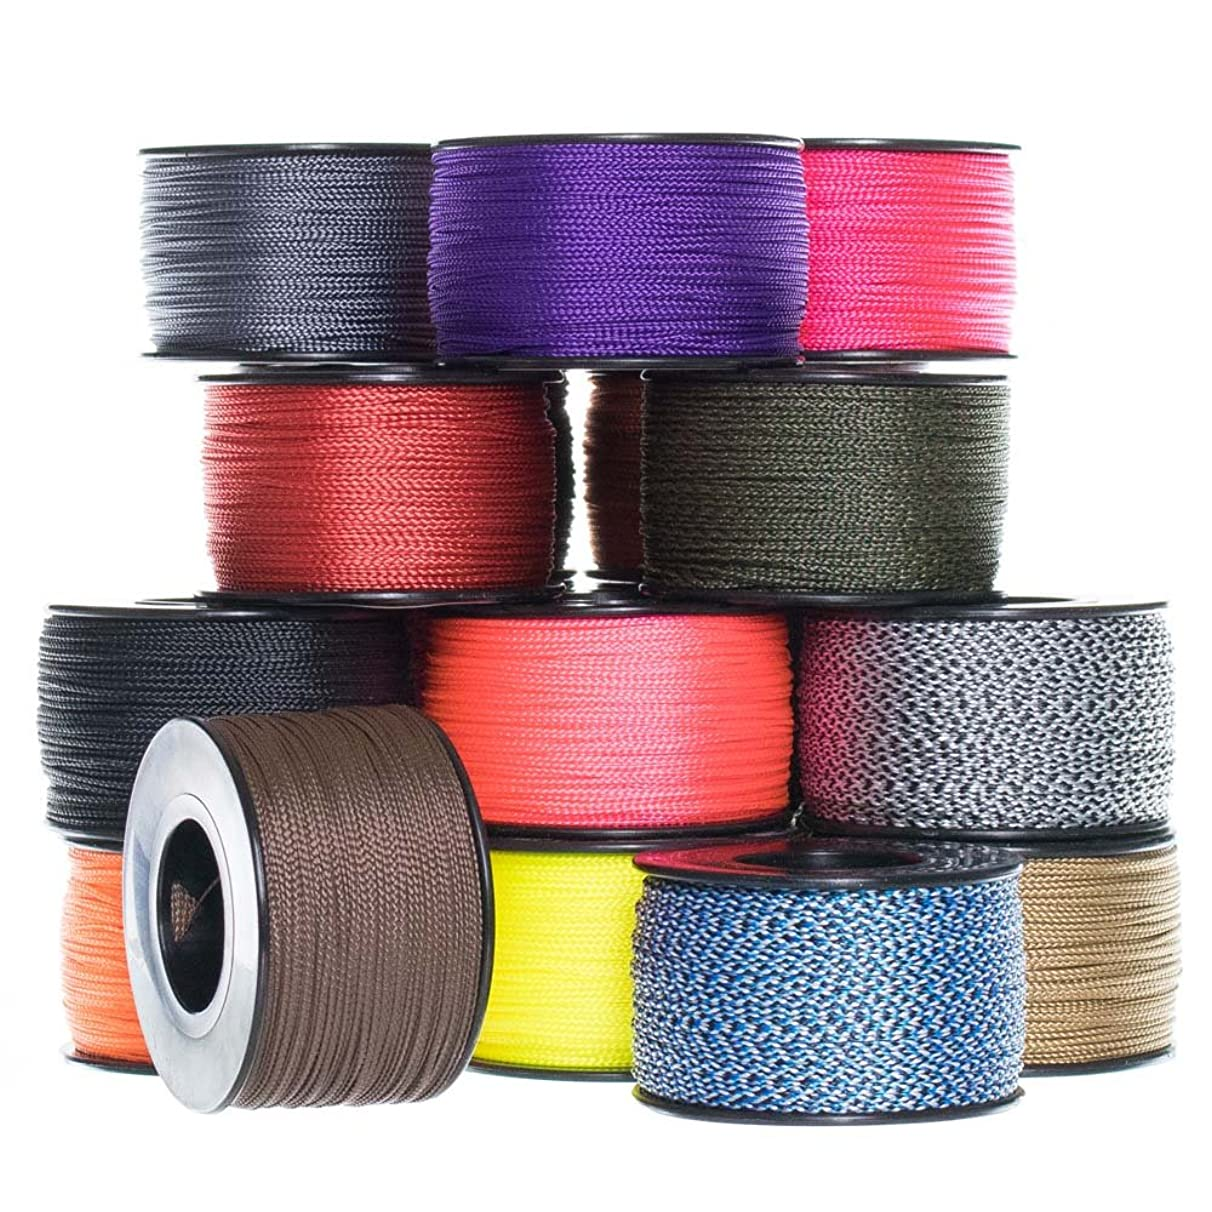 Atwood Nano Cord .75mm 300ft Small Spool Lightweight Braided Cord